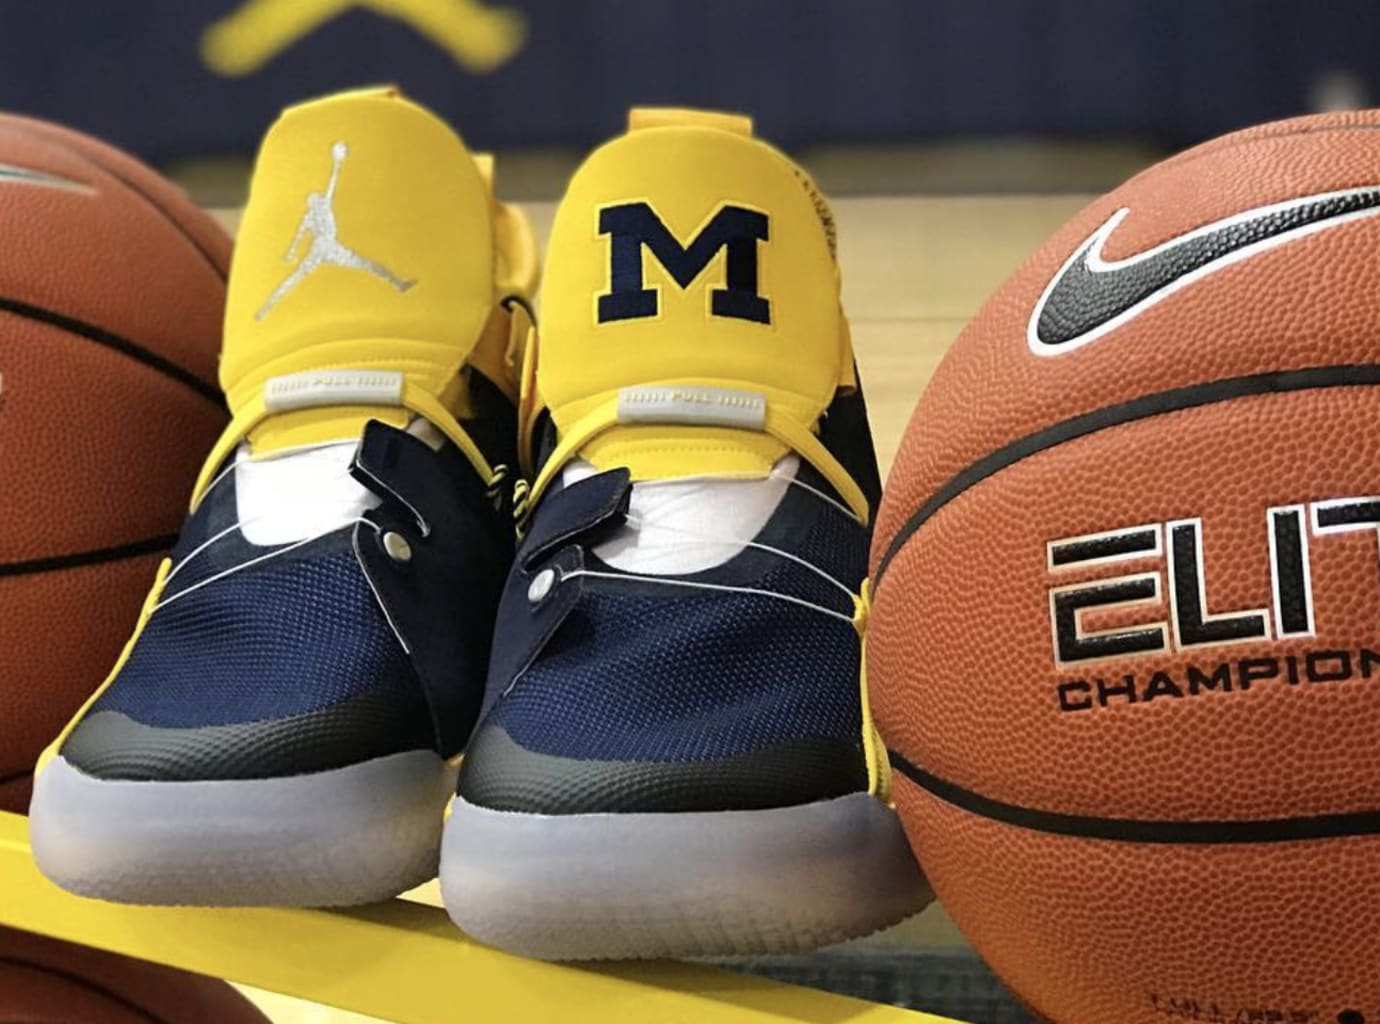 Air Jordan 33 'Michigan' PE 4